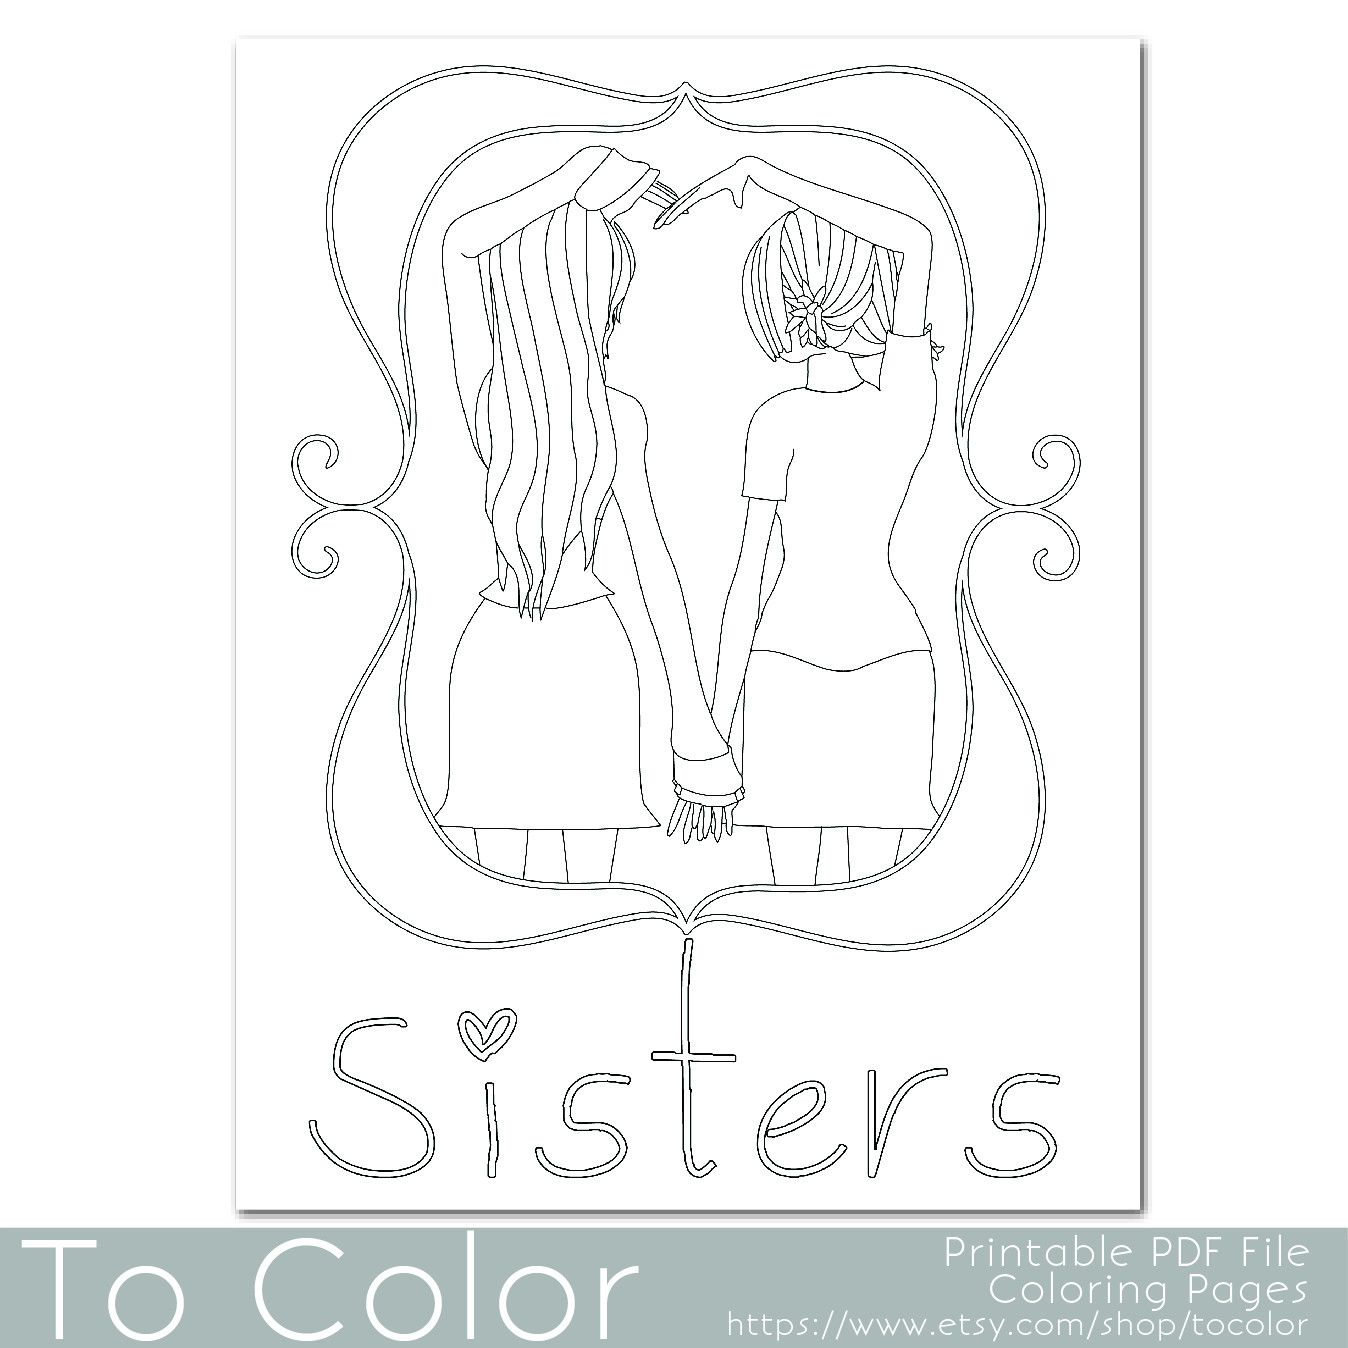 This Coloring Page Features Two Girls Holding Hands To Make A